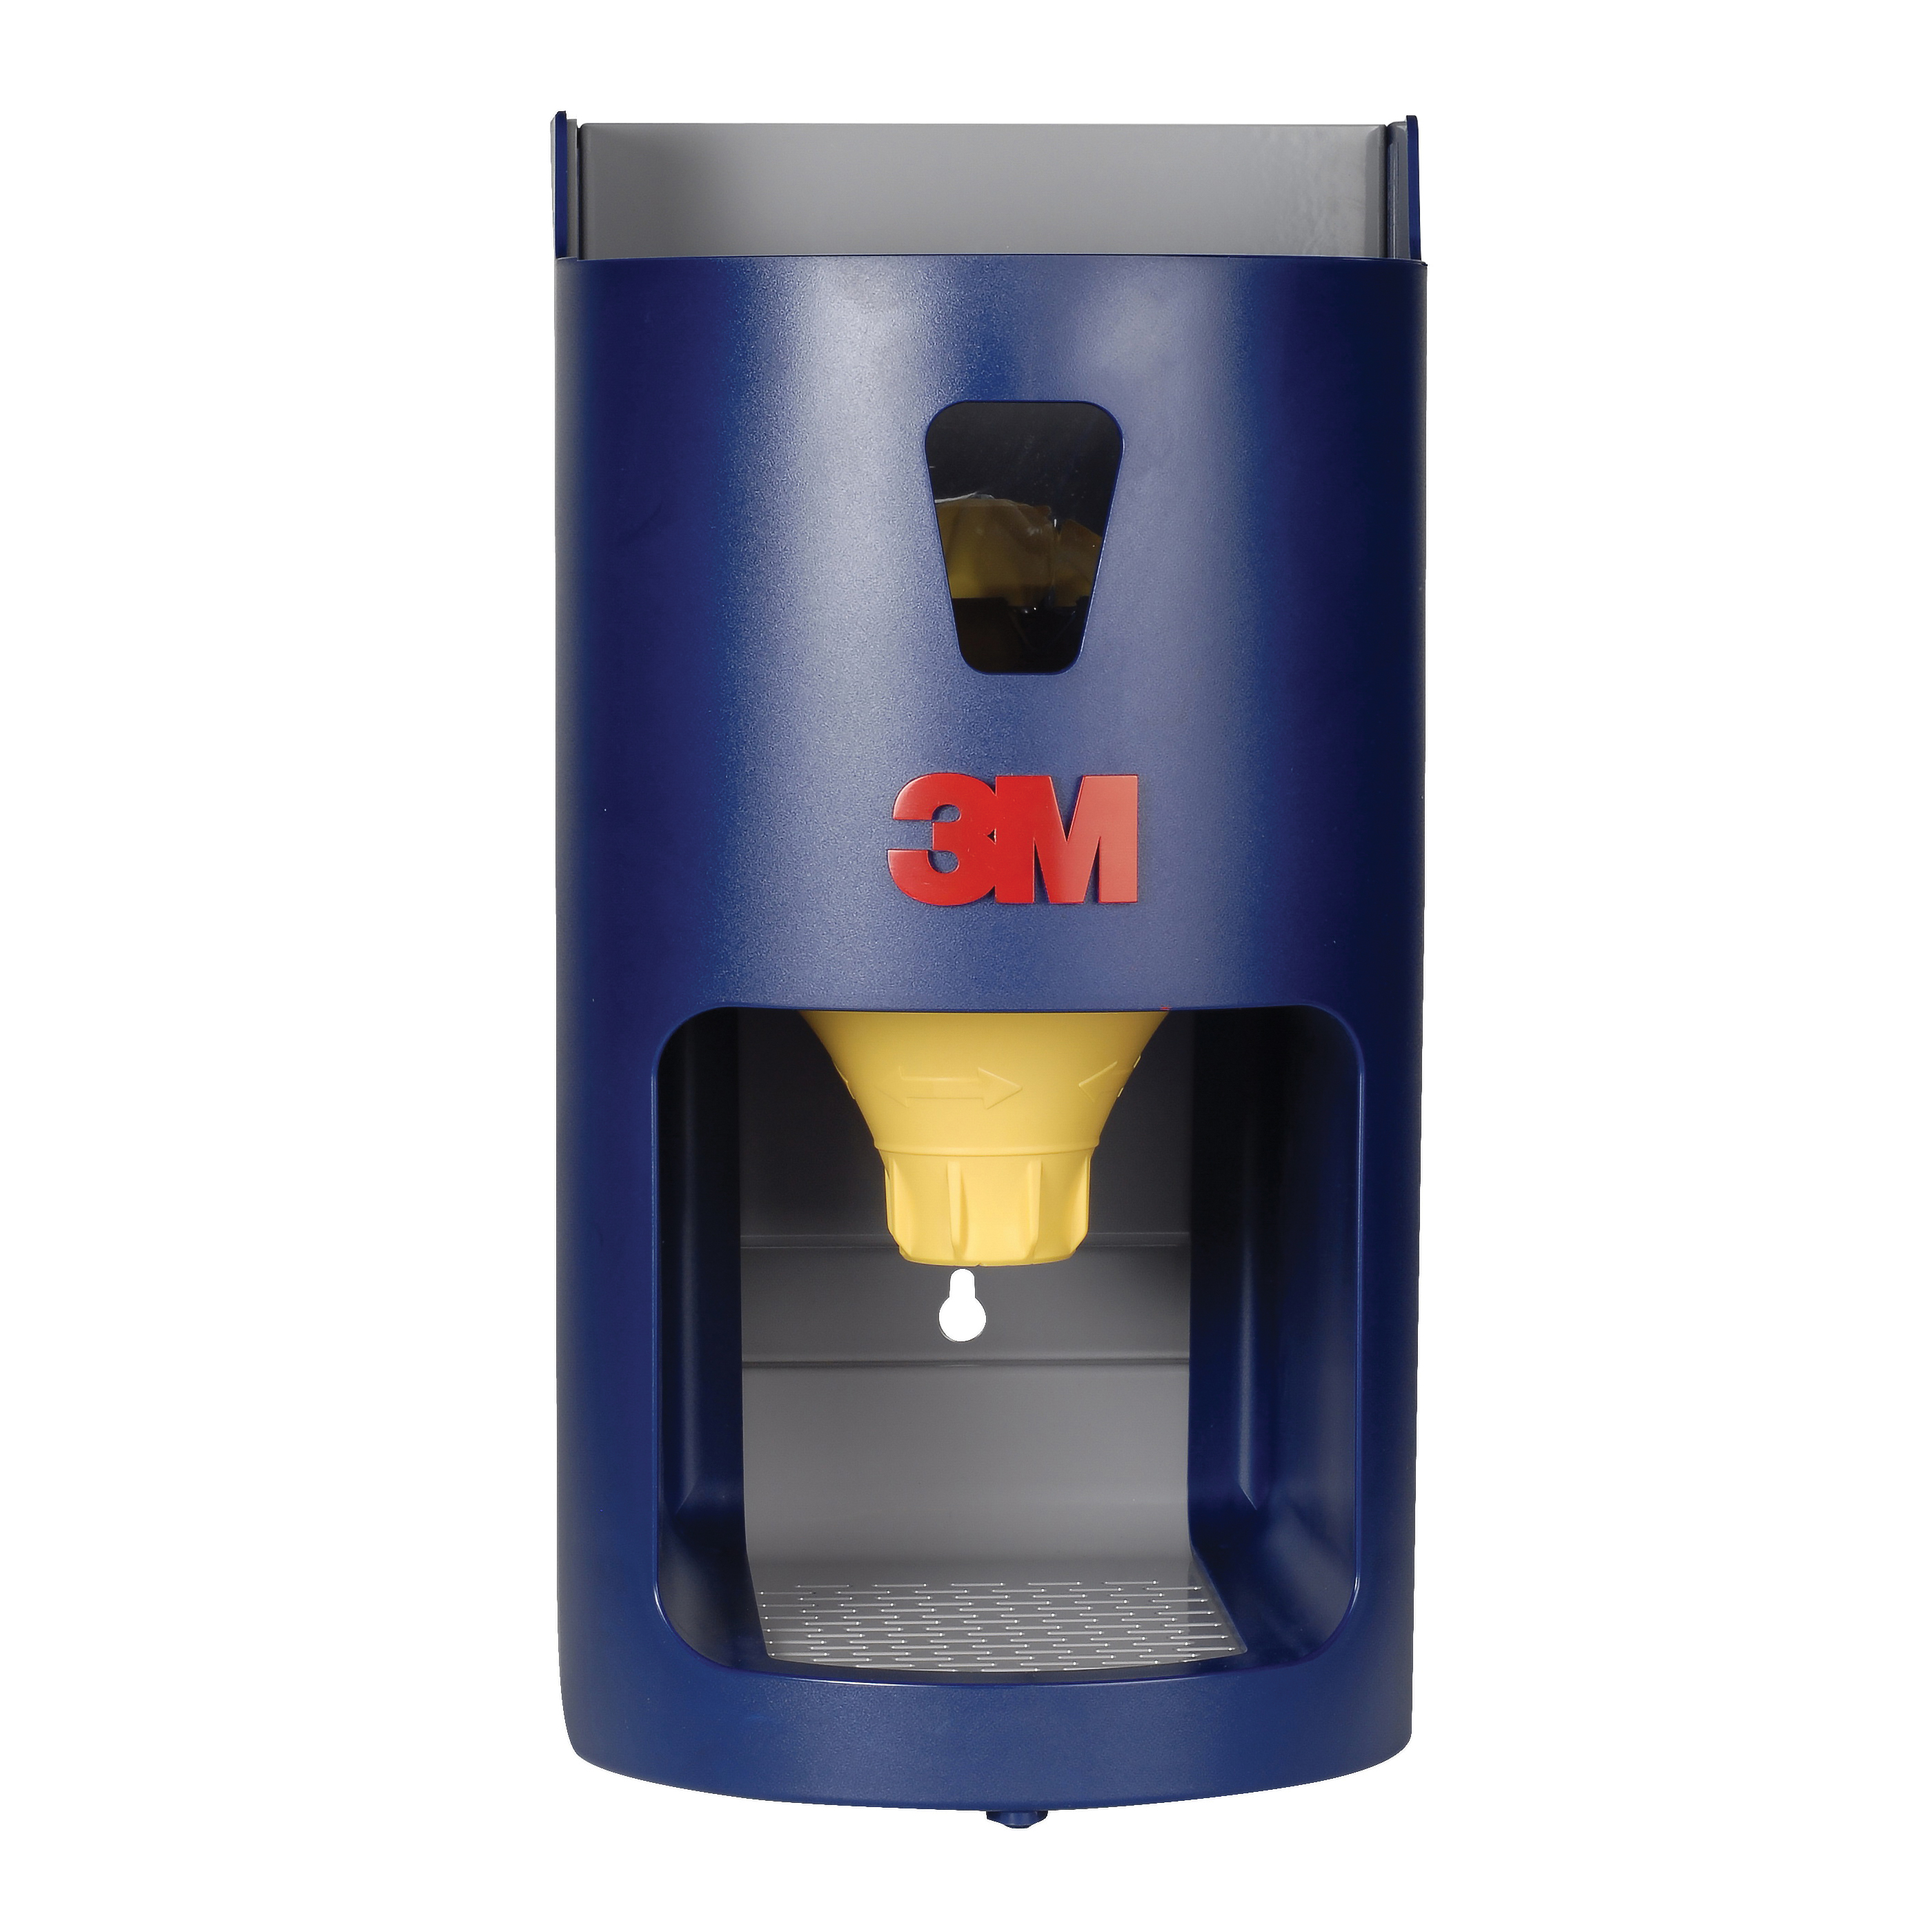 One touch dispenser 3m 391-0000